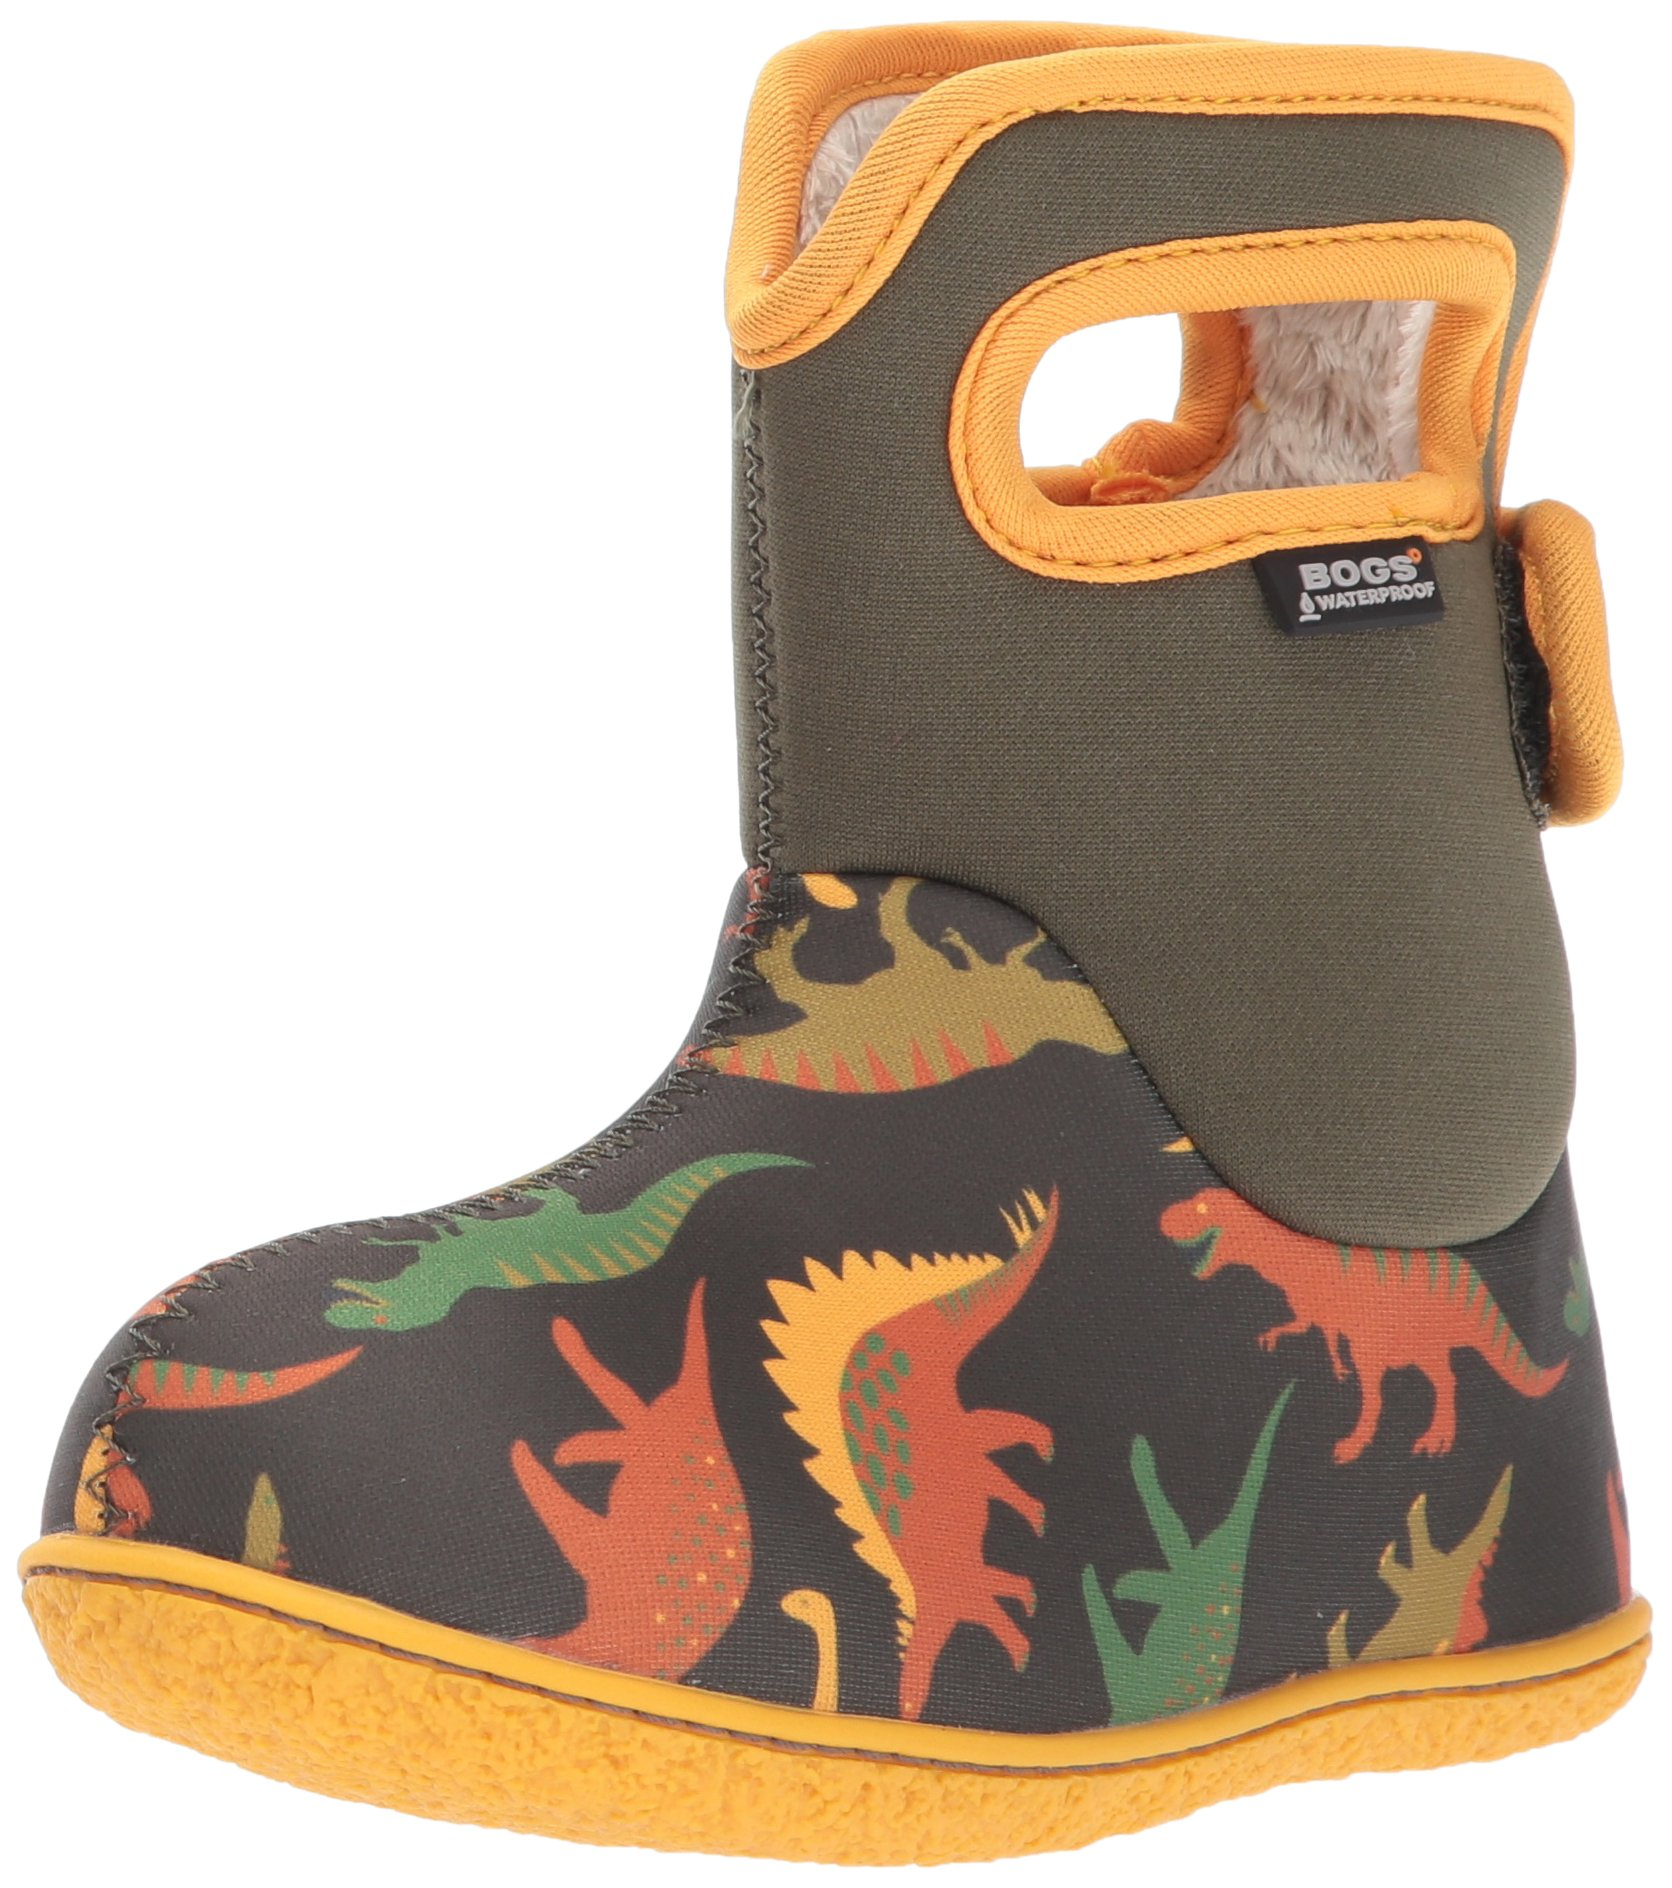 Bogs Baby Bogs Waterproof Insulated Toddler/Kids Rain Boots for Boys and Girls, Dino Print/Moss/Multi, 6 M US Toddler